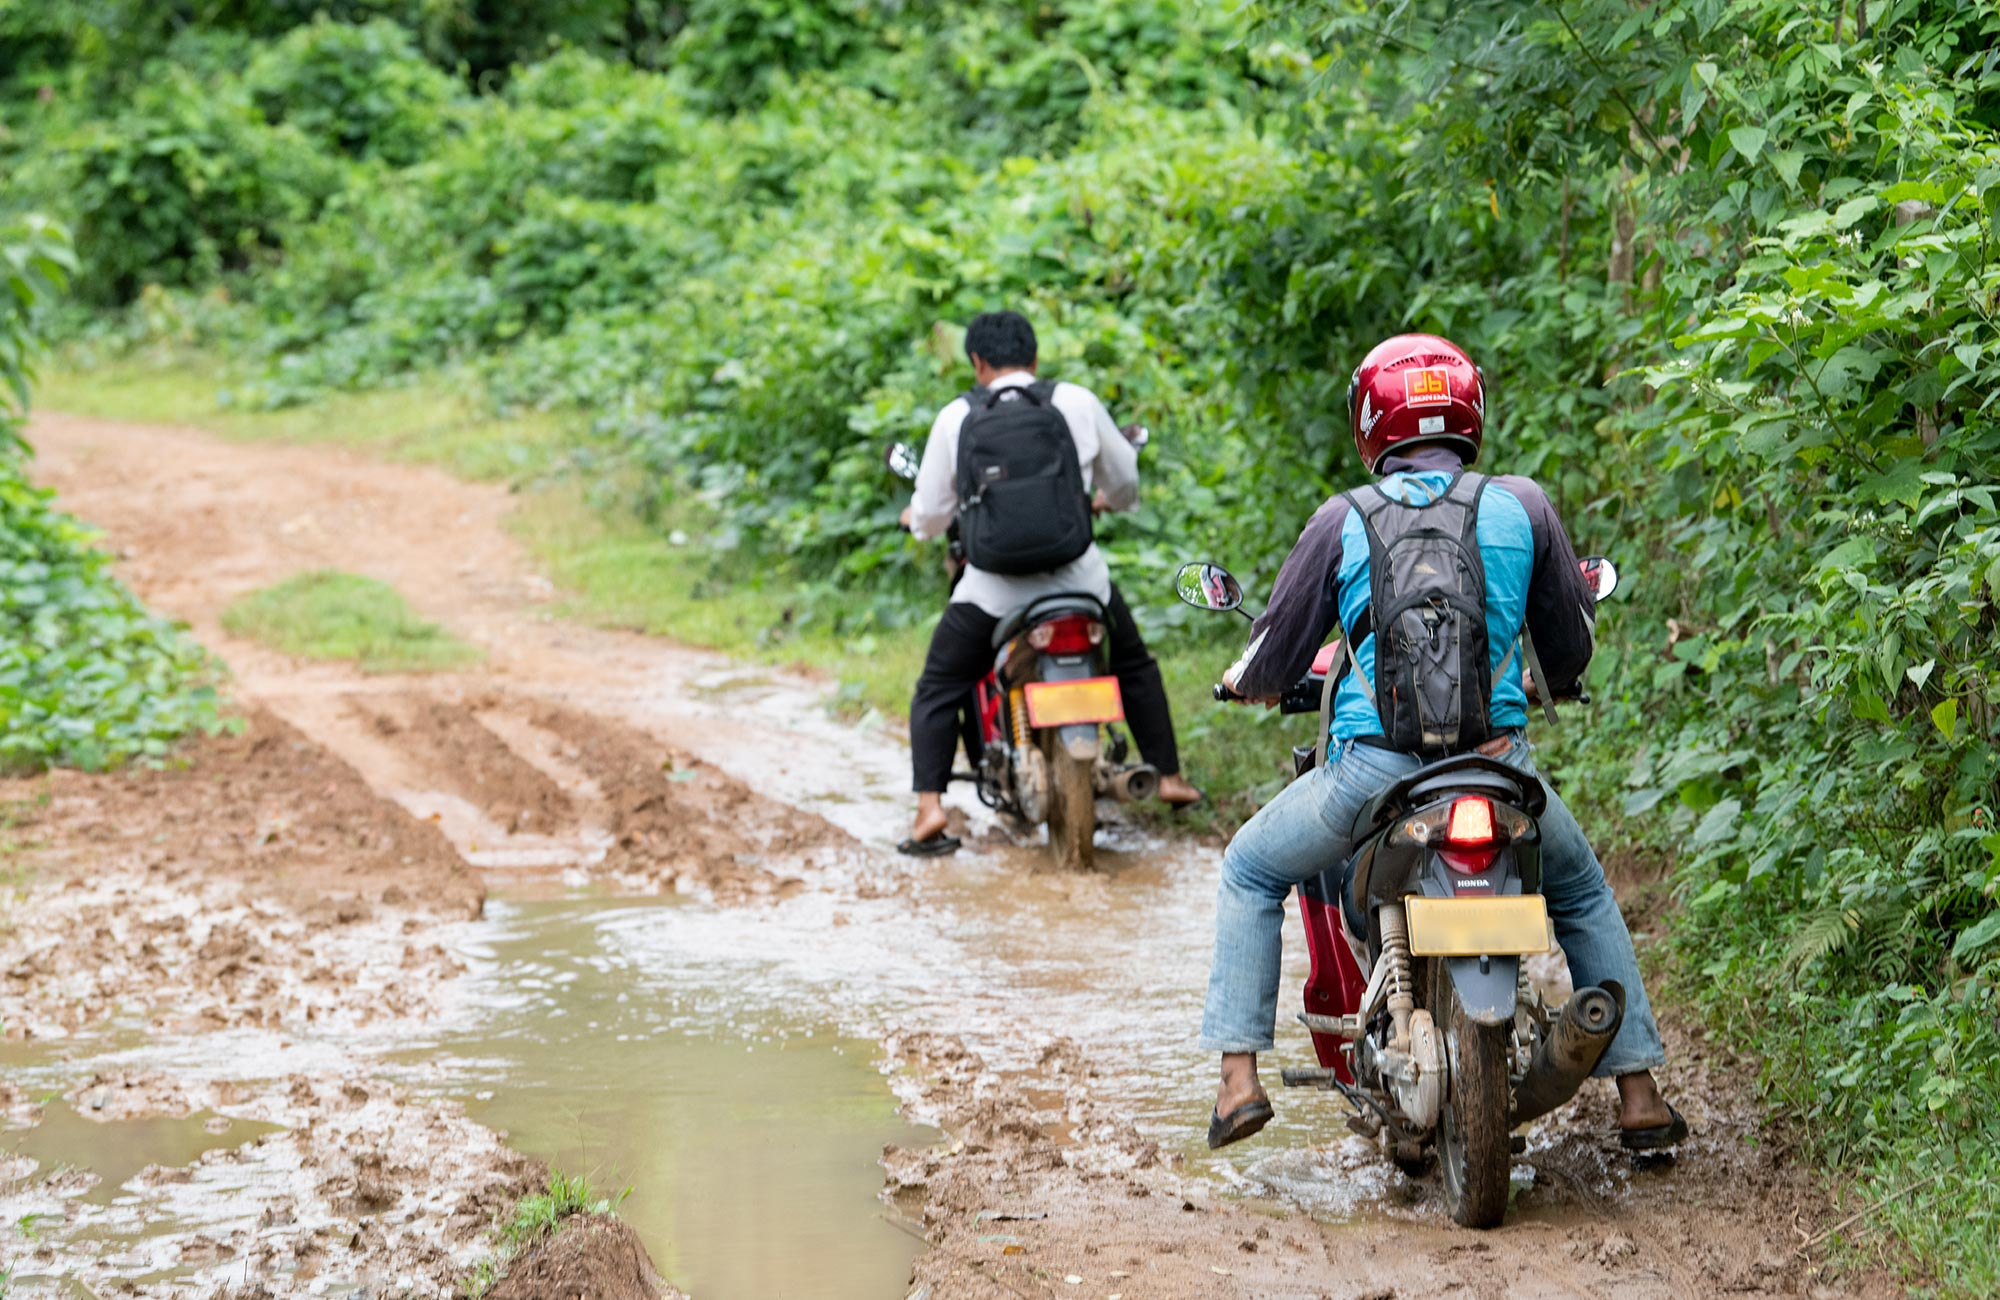 Two people driving motorcycles on muddy road in jungle